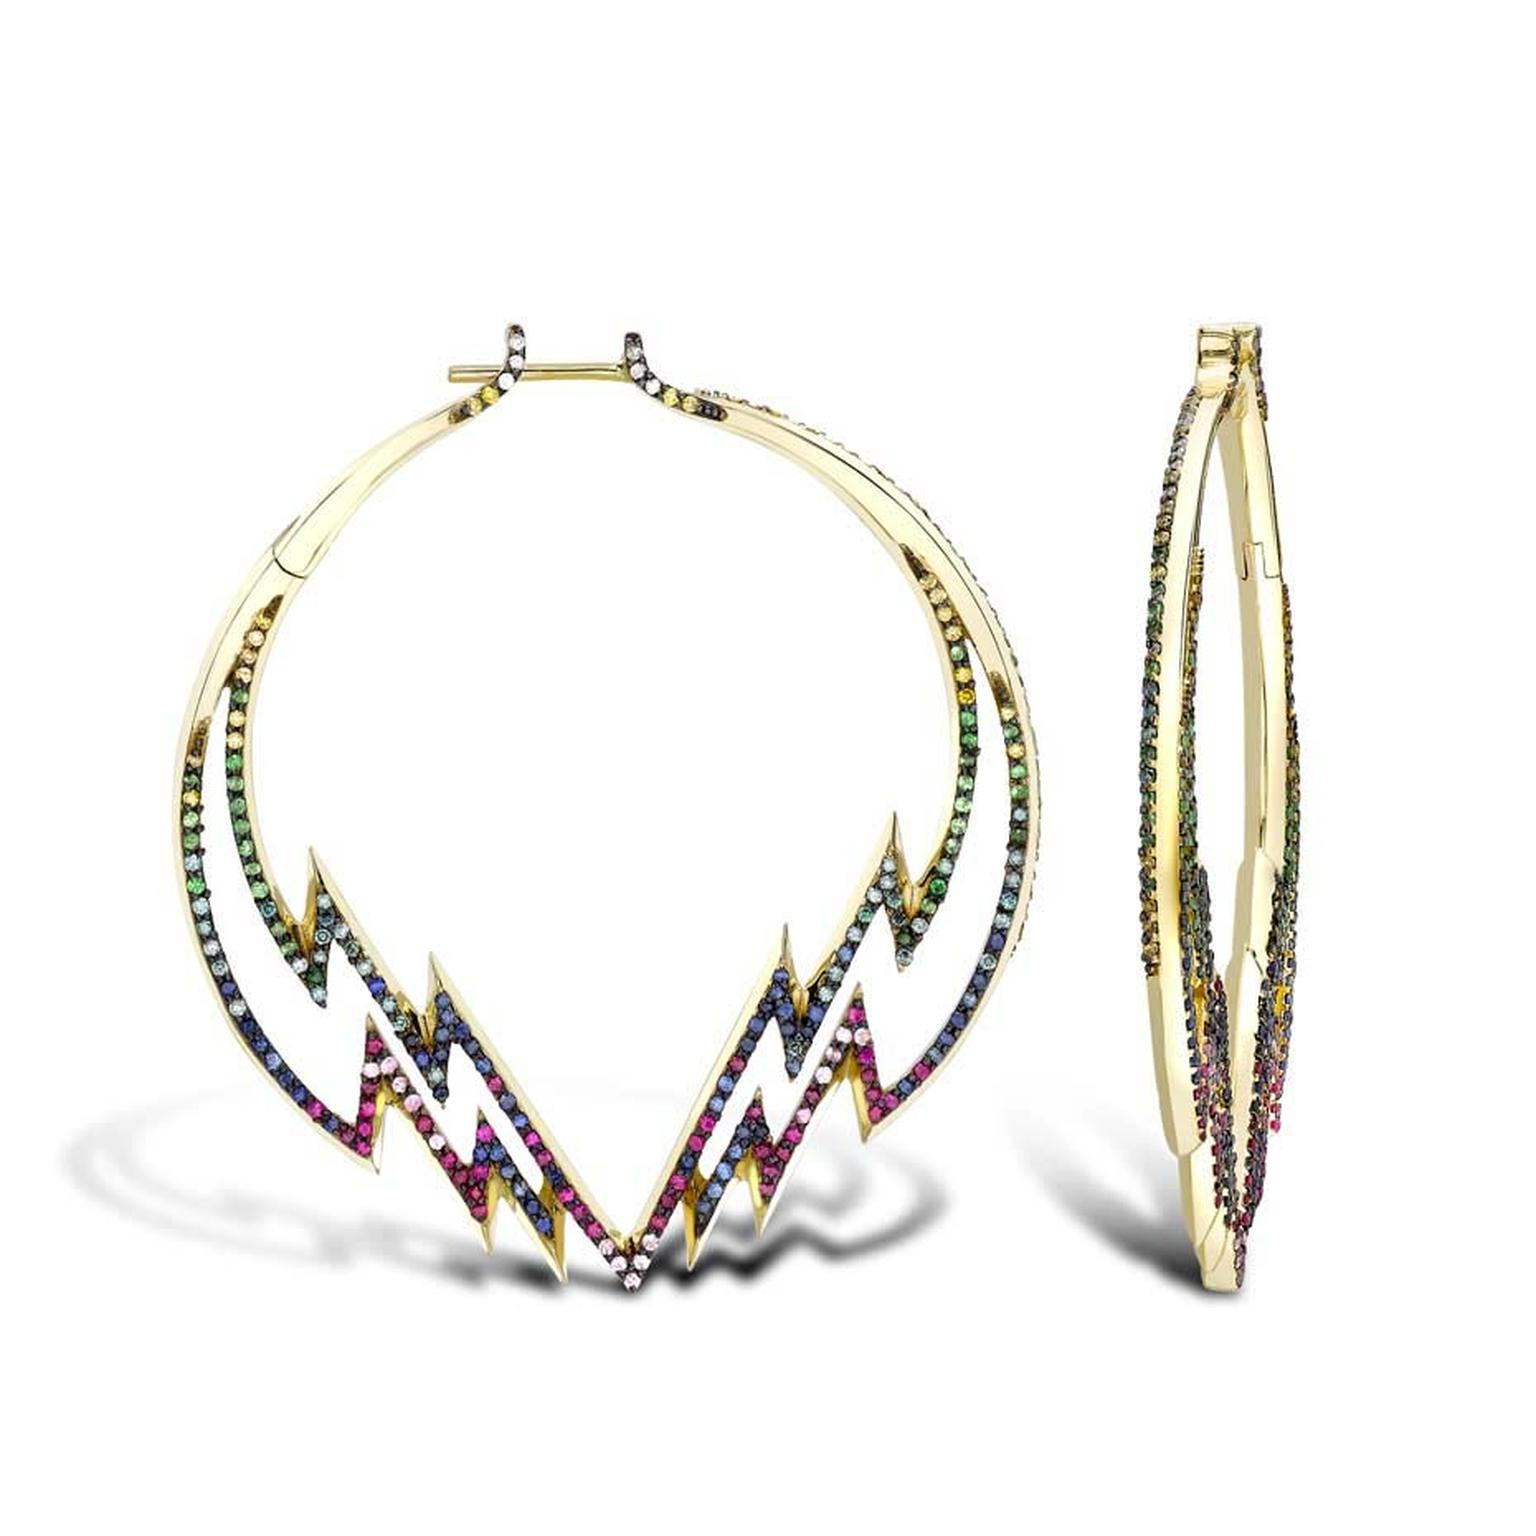 Venyx Electra Hoop earrings in yellow gold featuring white, yellow and blue diamonds, pink sapphires, rubies and tsavorite garnets ($21,165).